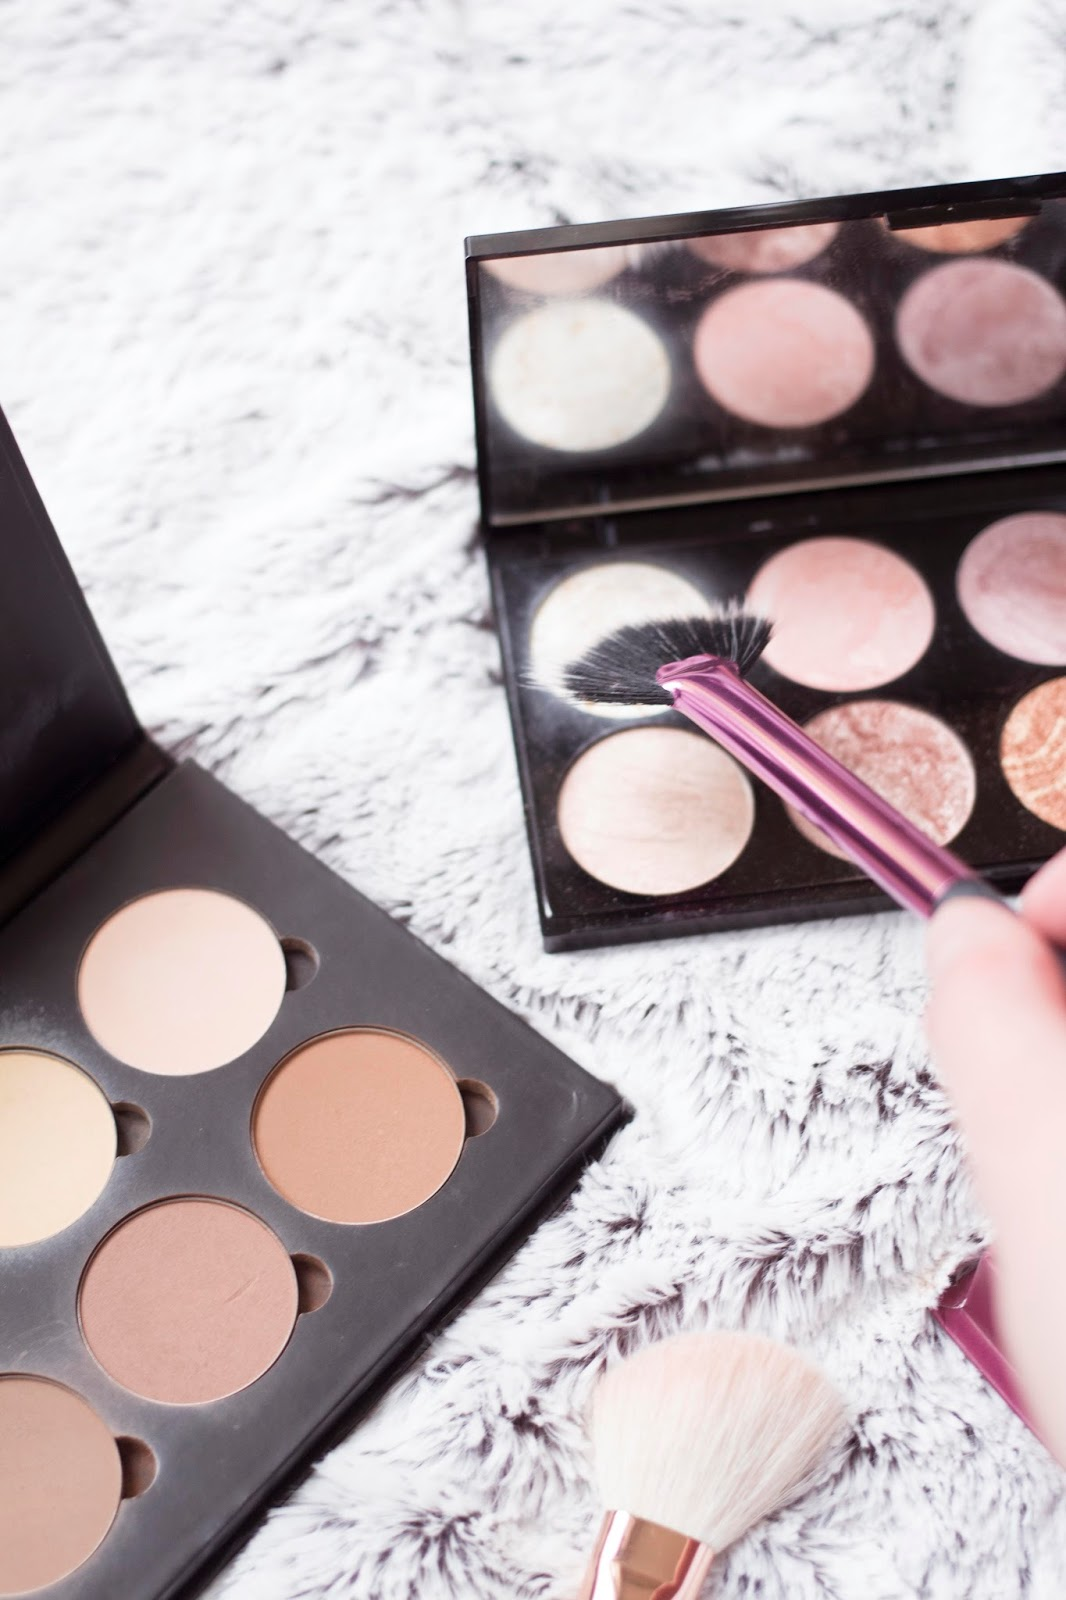 THE ULTIMATE CONTOUR AND HIGHLIGHT GUIDE